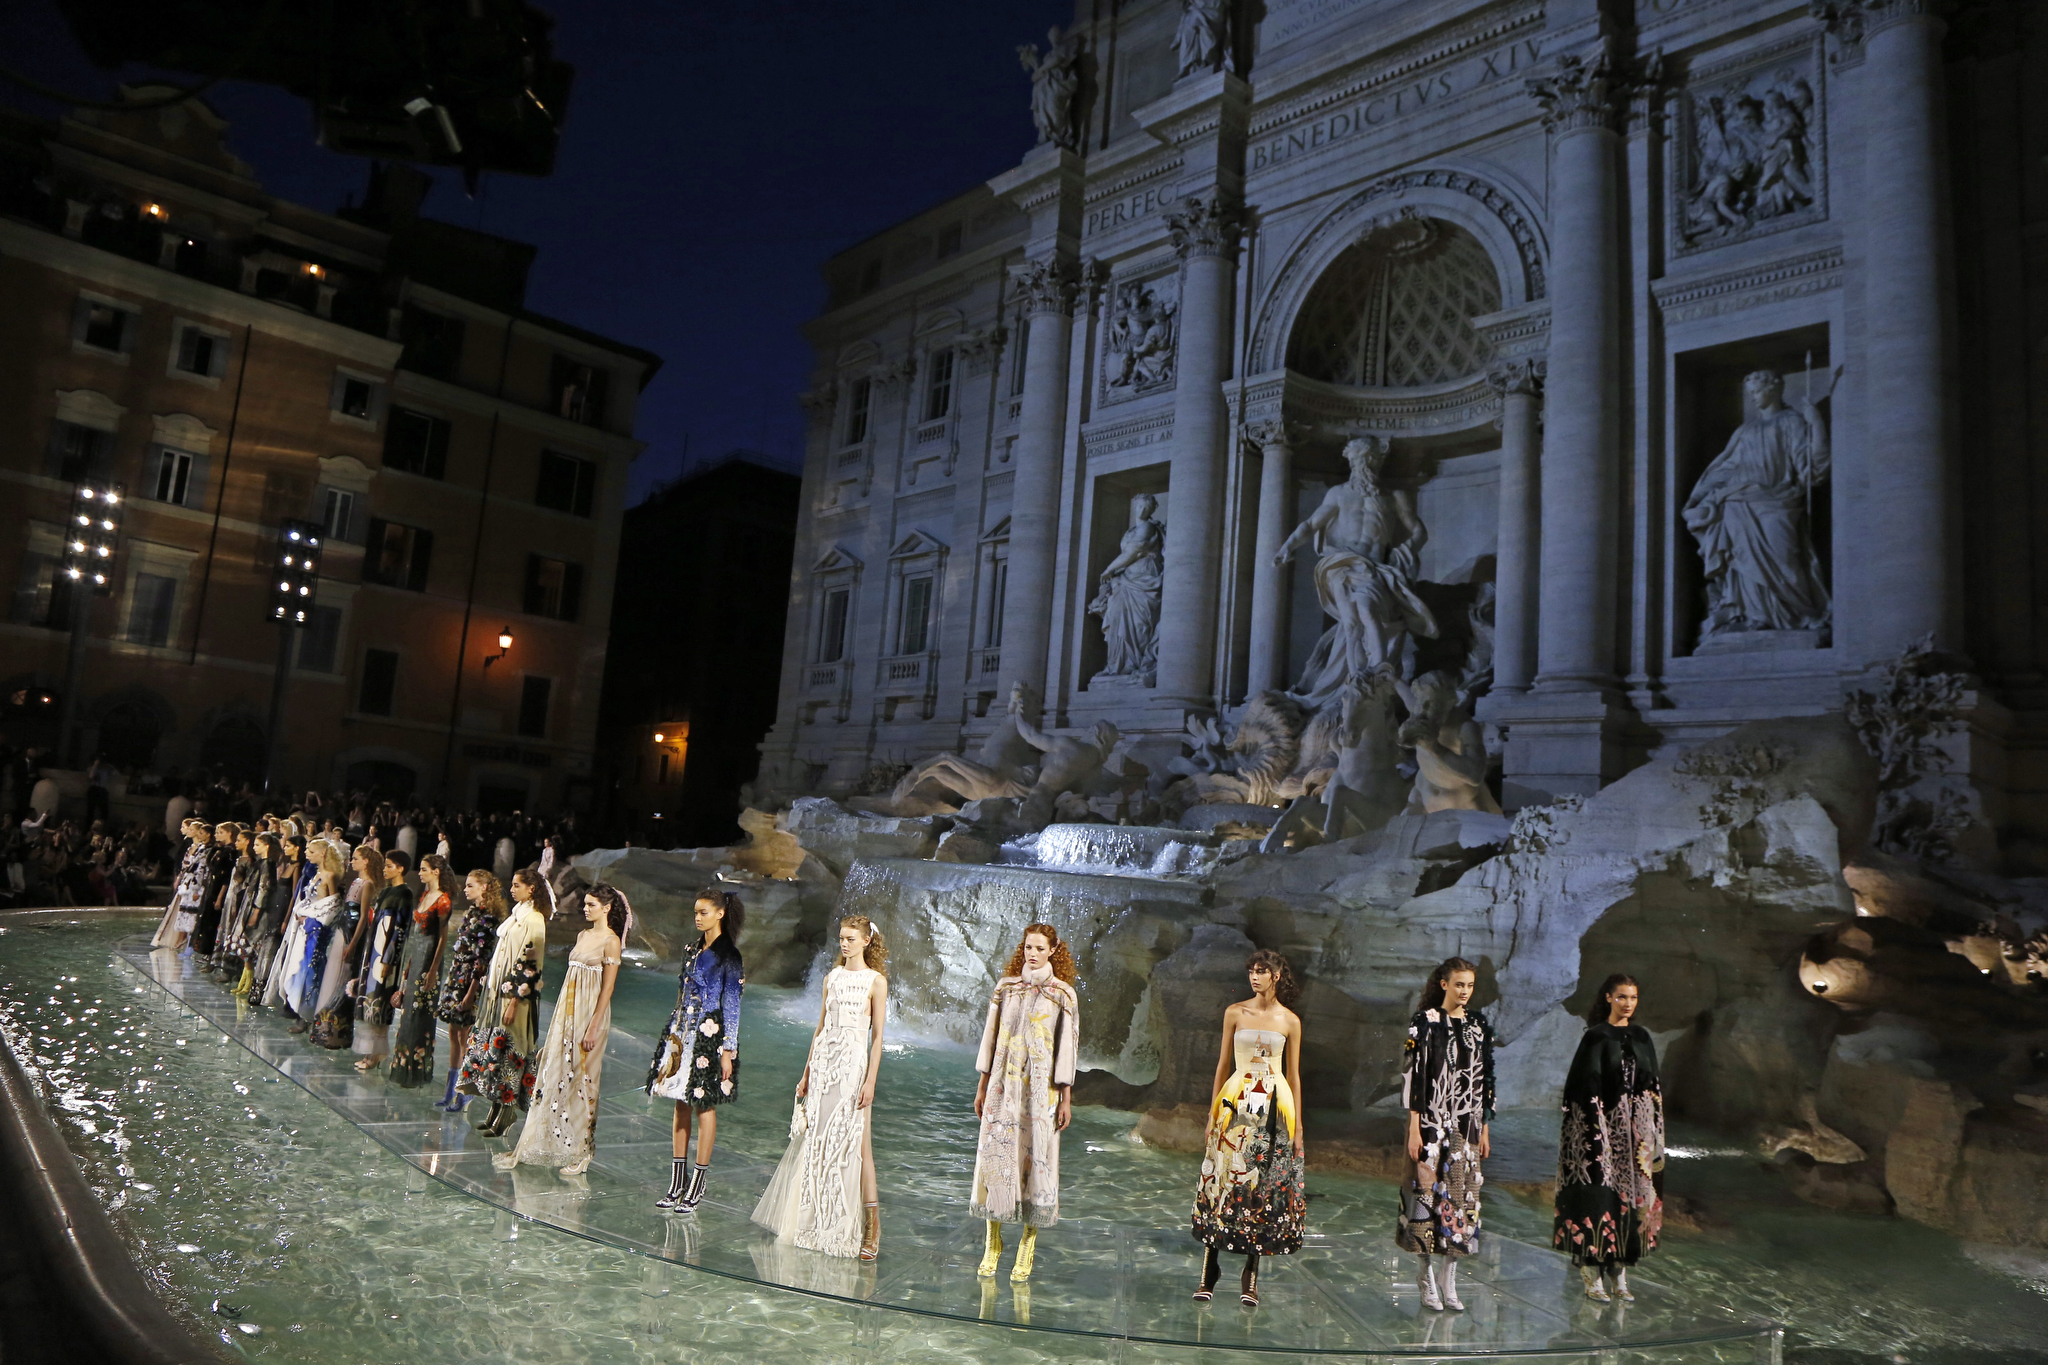 Fendi 90th anniversary runway show athe the Trevi Fountian in Rome.